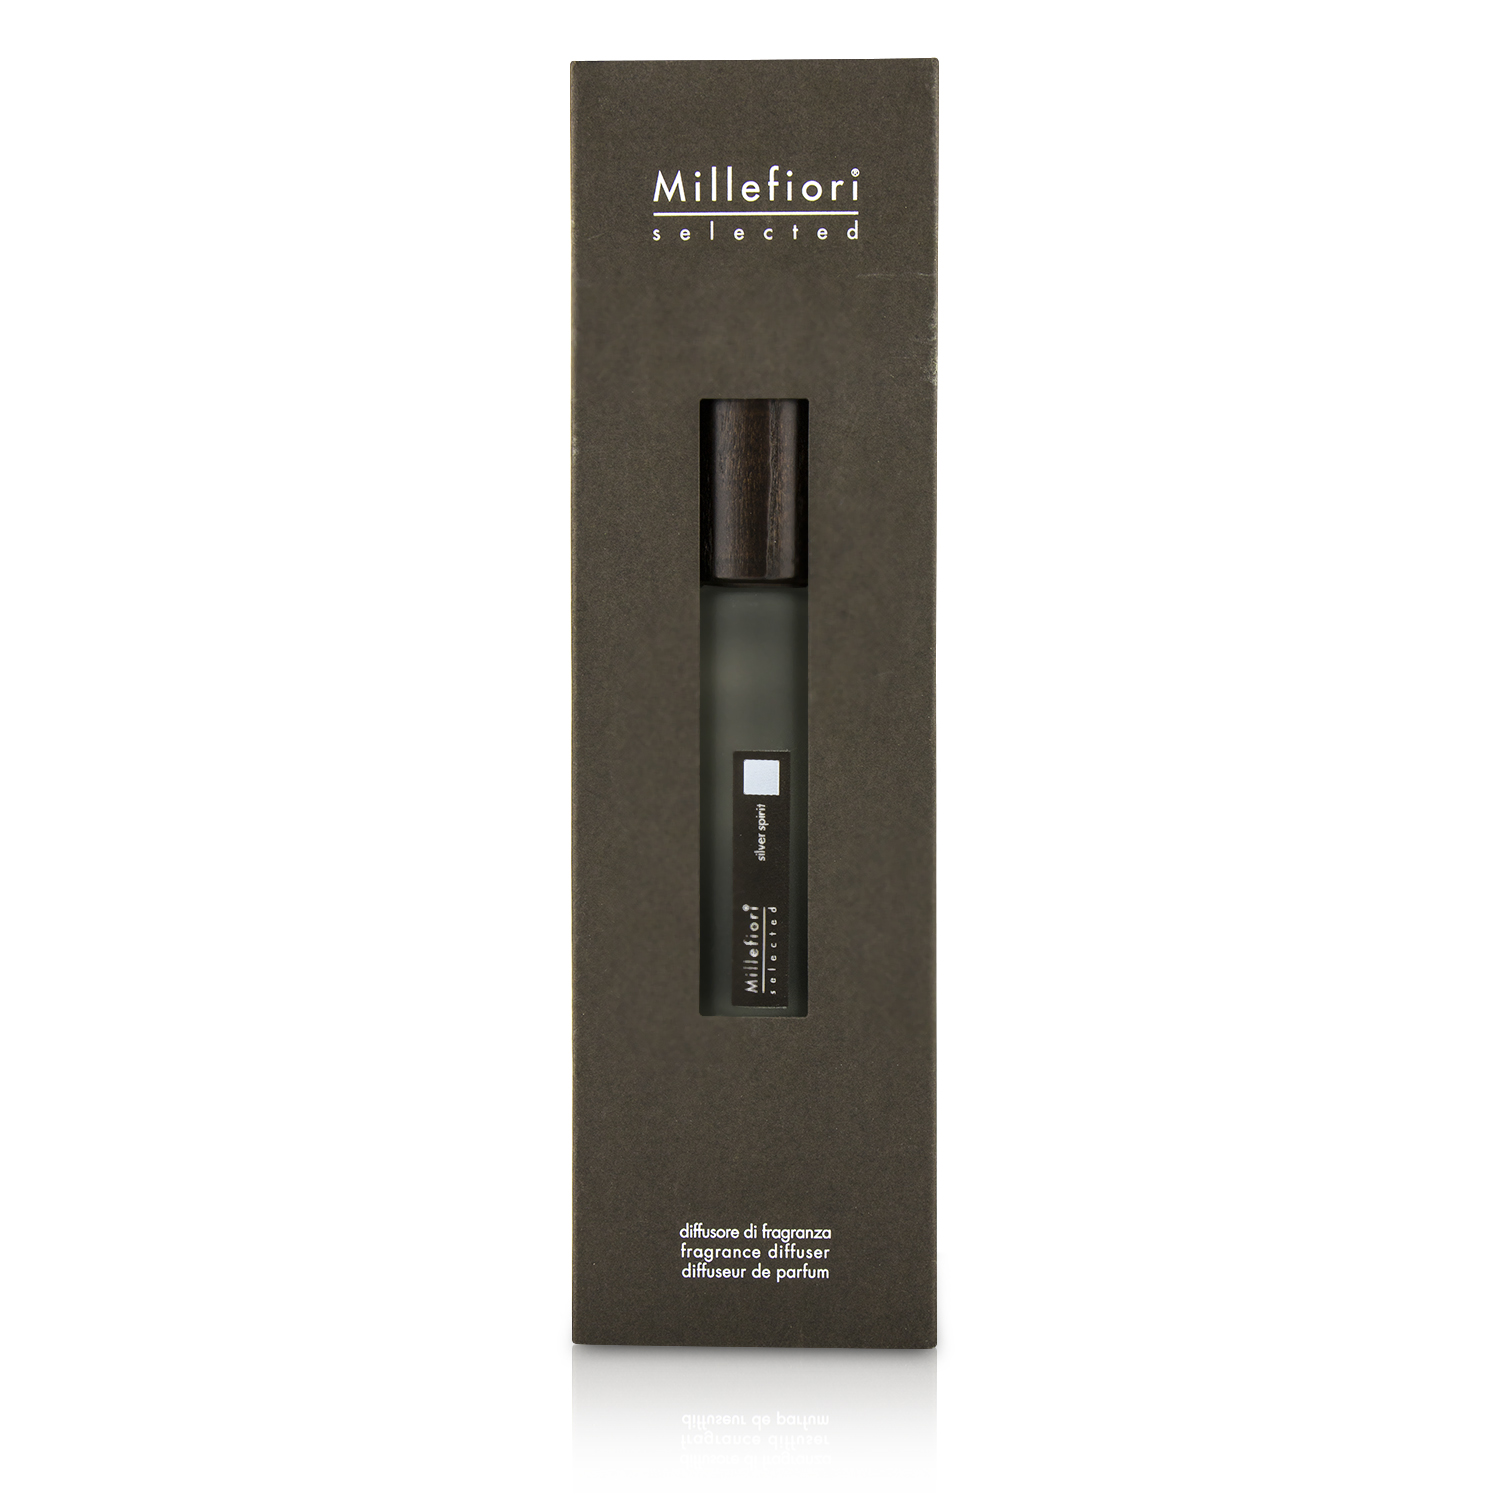 Selected Fragrance Diffuser - Silver Spirit